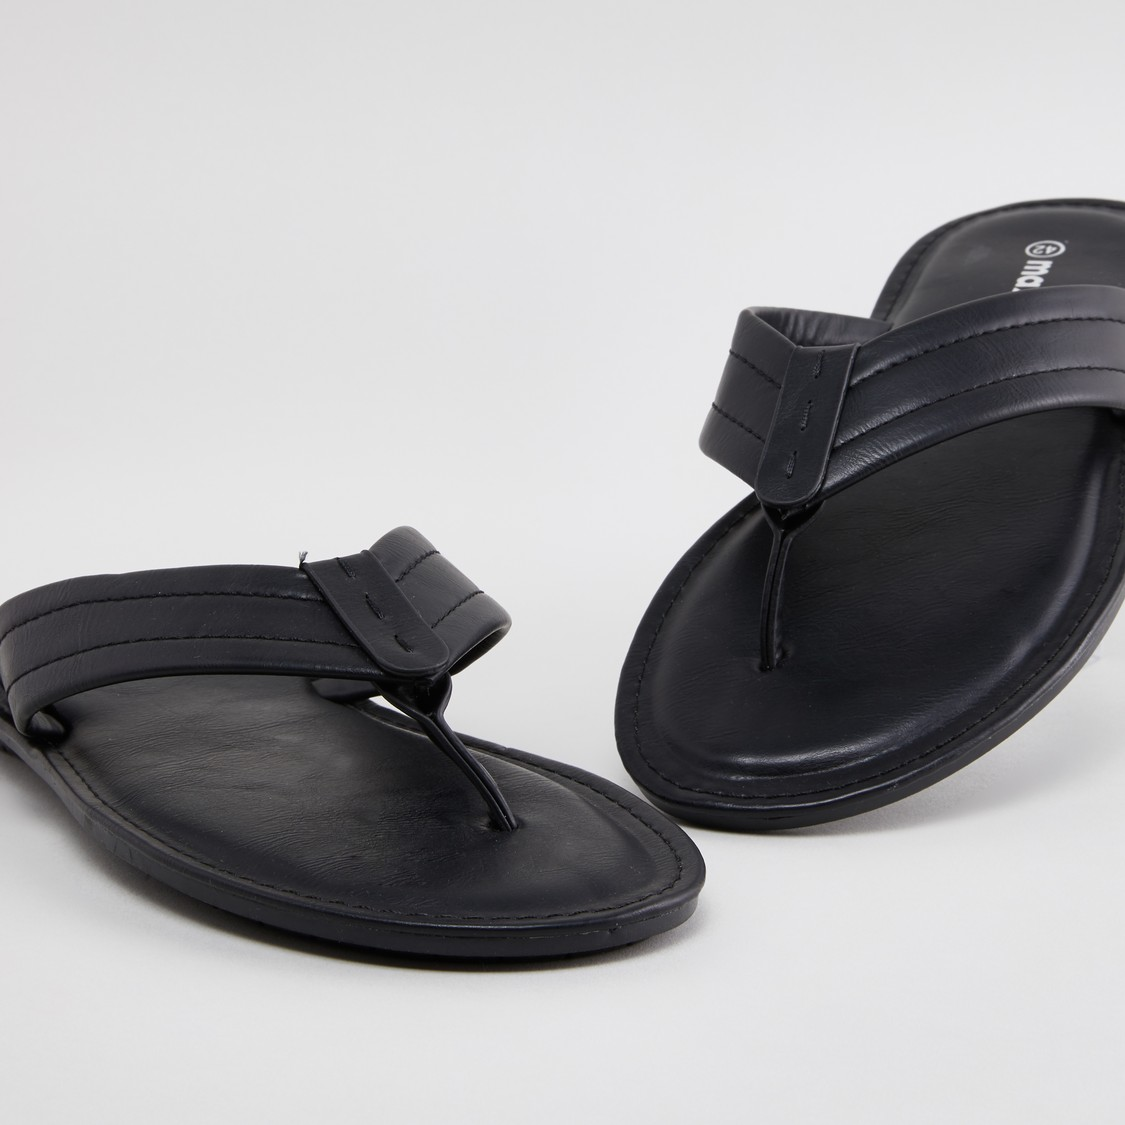 Textured Sandals with Slip-On Closure